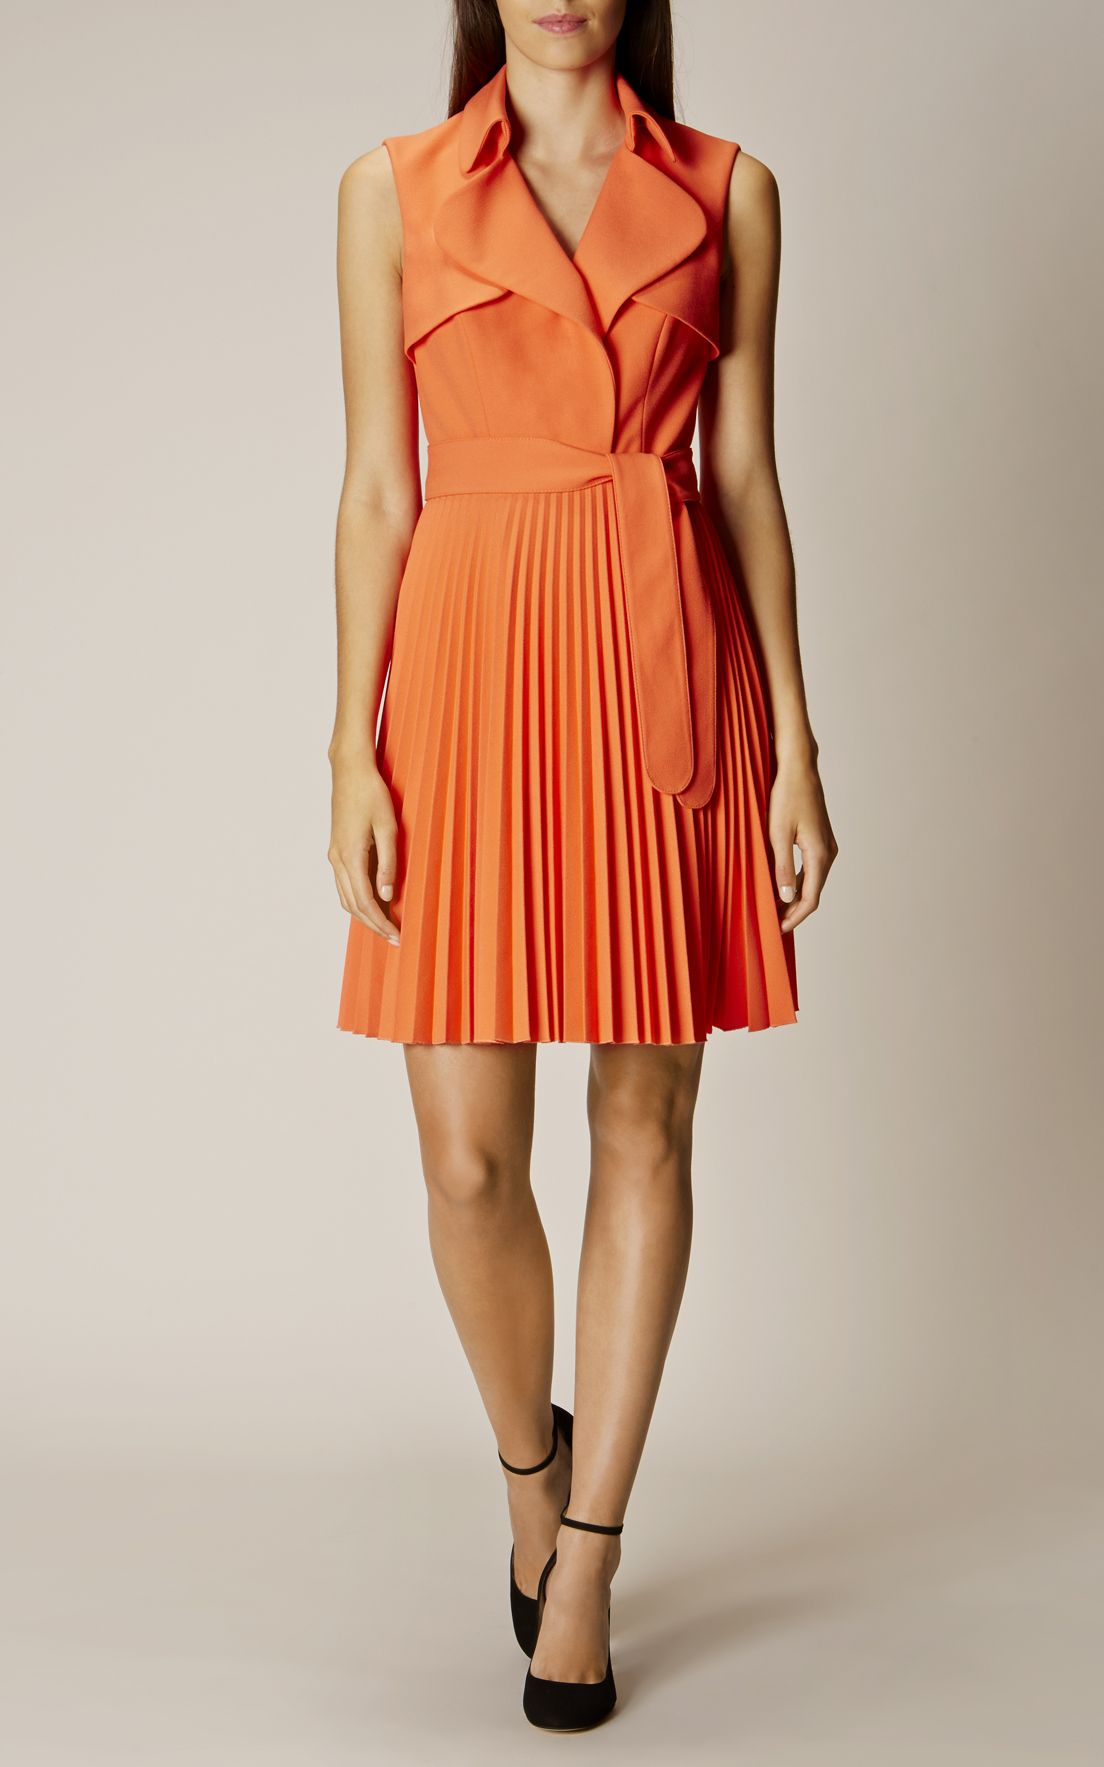 ade2d59db3 Karen Millen, PLEATED TRENCH DRESS Orange | Love. Want. Need ...